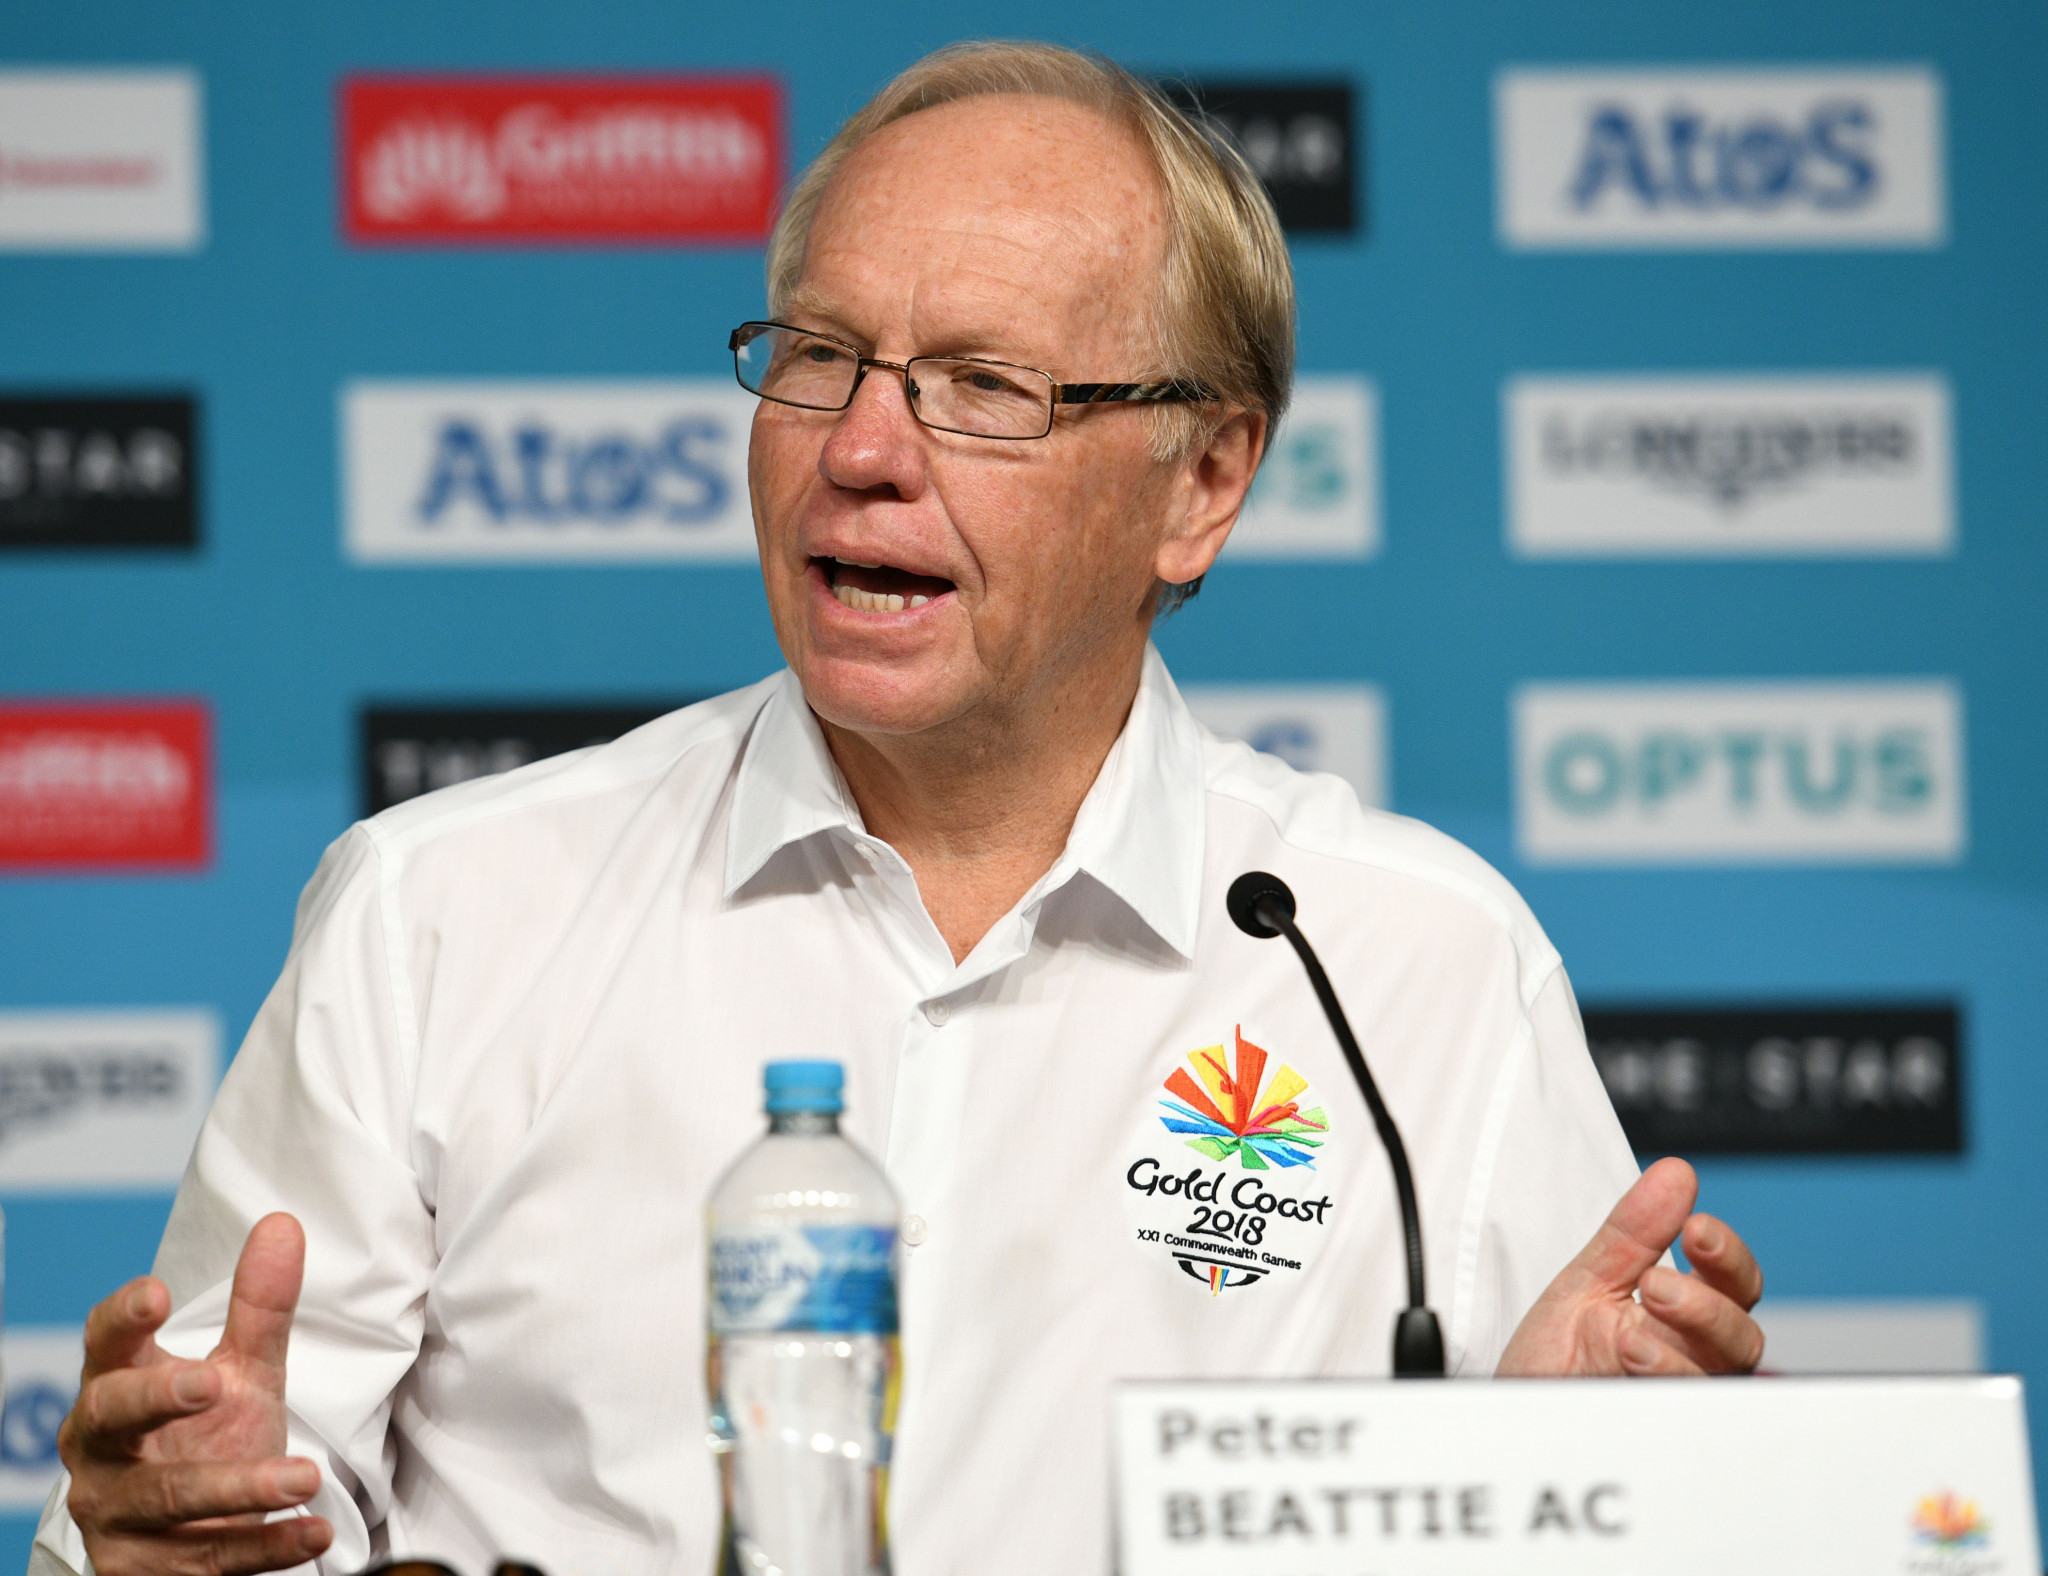 Peter Beattie, chairman of GOLDOC, announced the sum after the final Gold Coast 2018 board meeting ©Getty Images